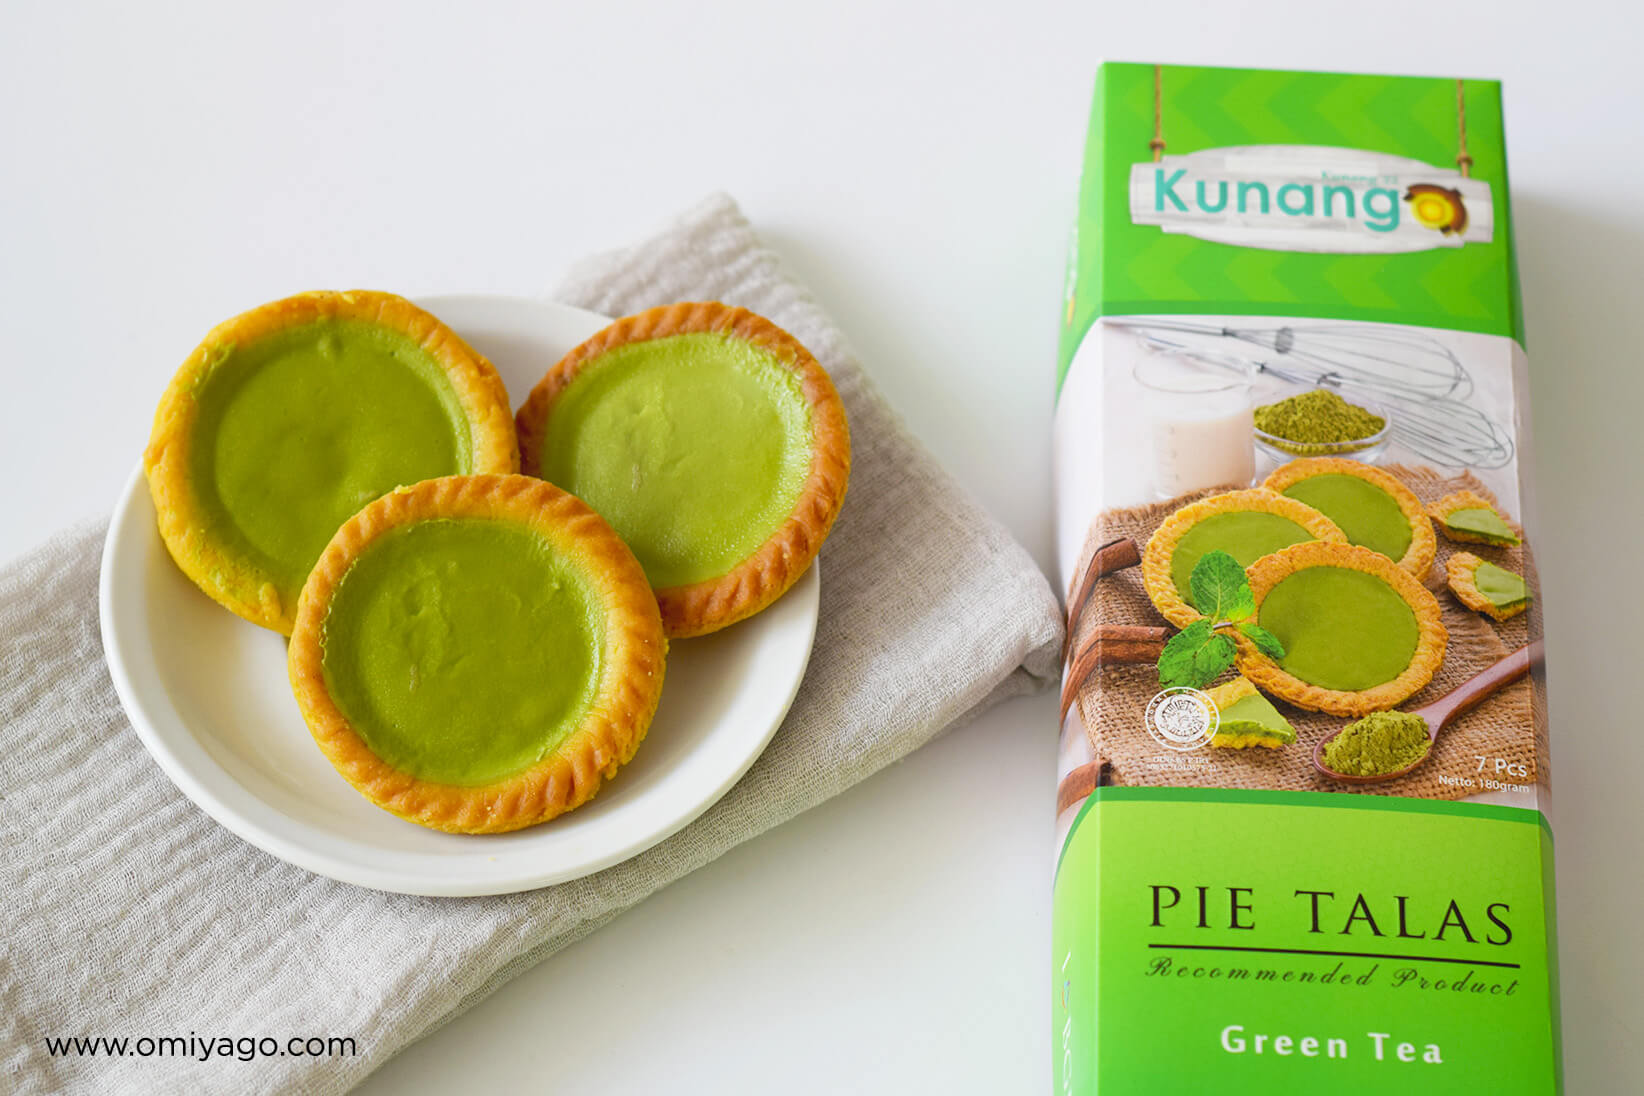 pie-talas-kunang-green-tea